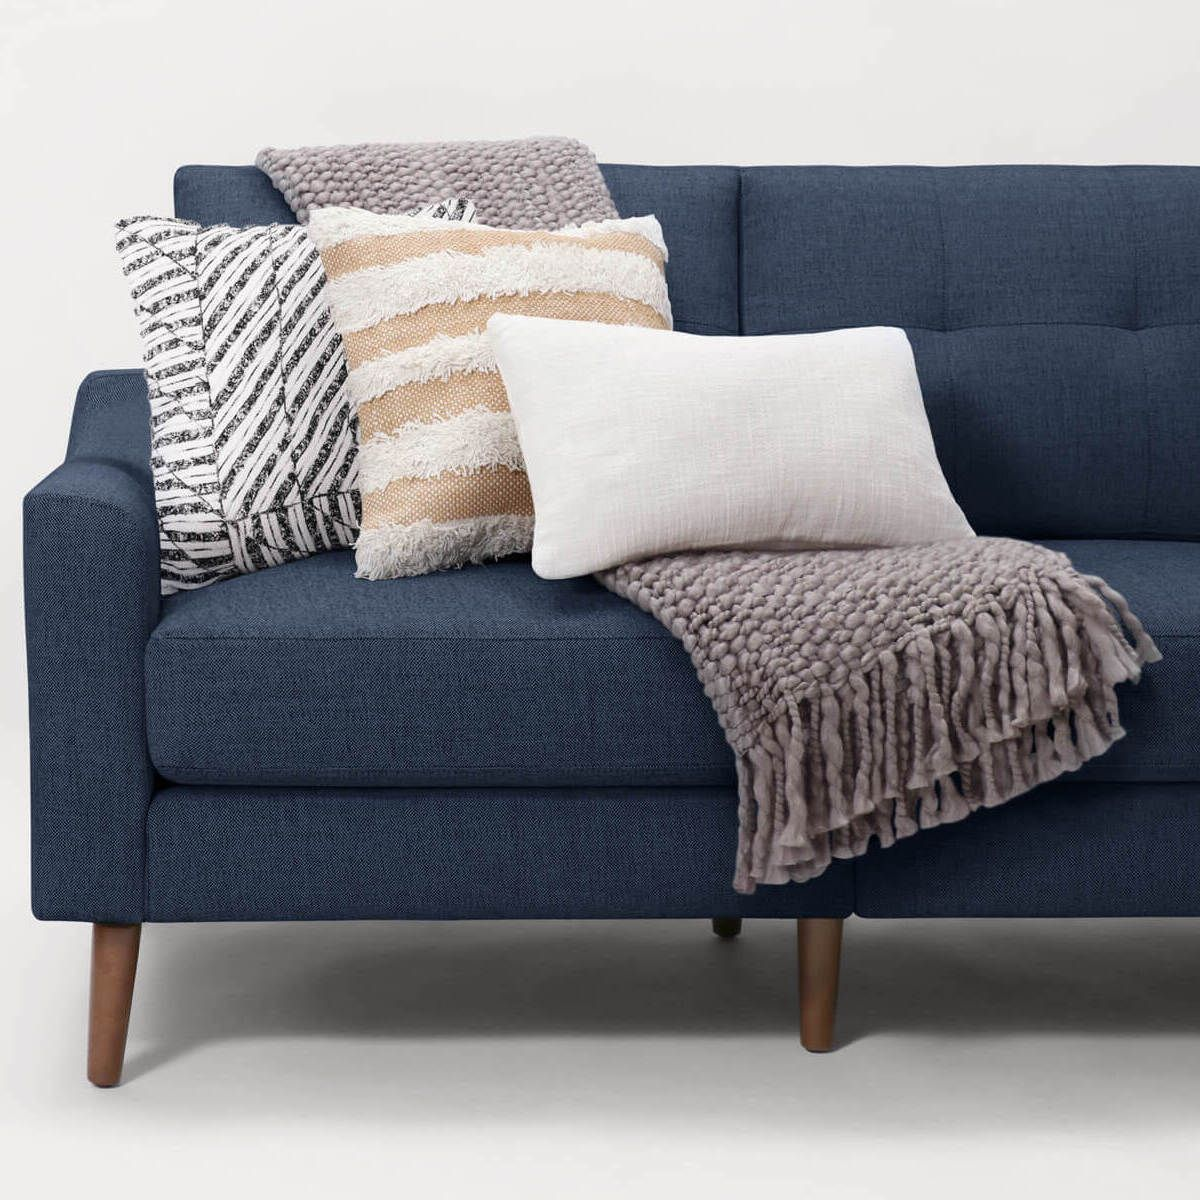 The Luxury Couch For Real Life Burrow Blue Couch Living Room Minimal Living Room Modern Furniture Living Room